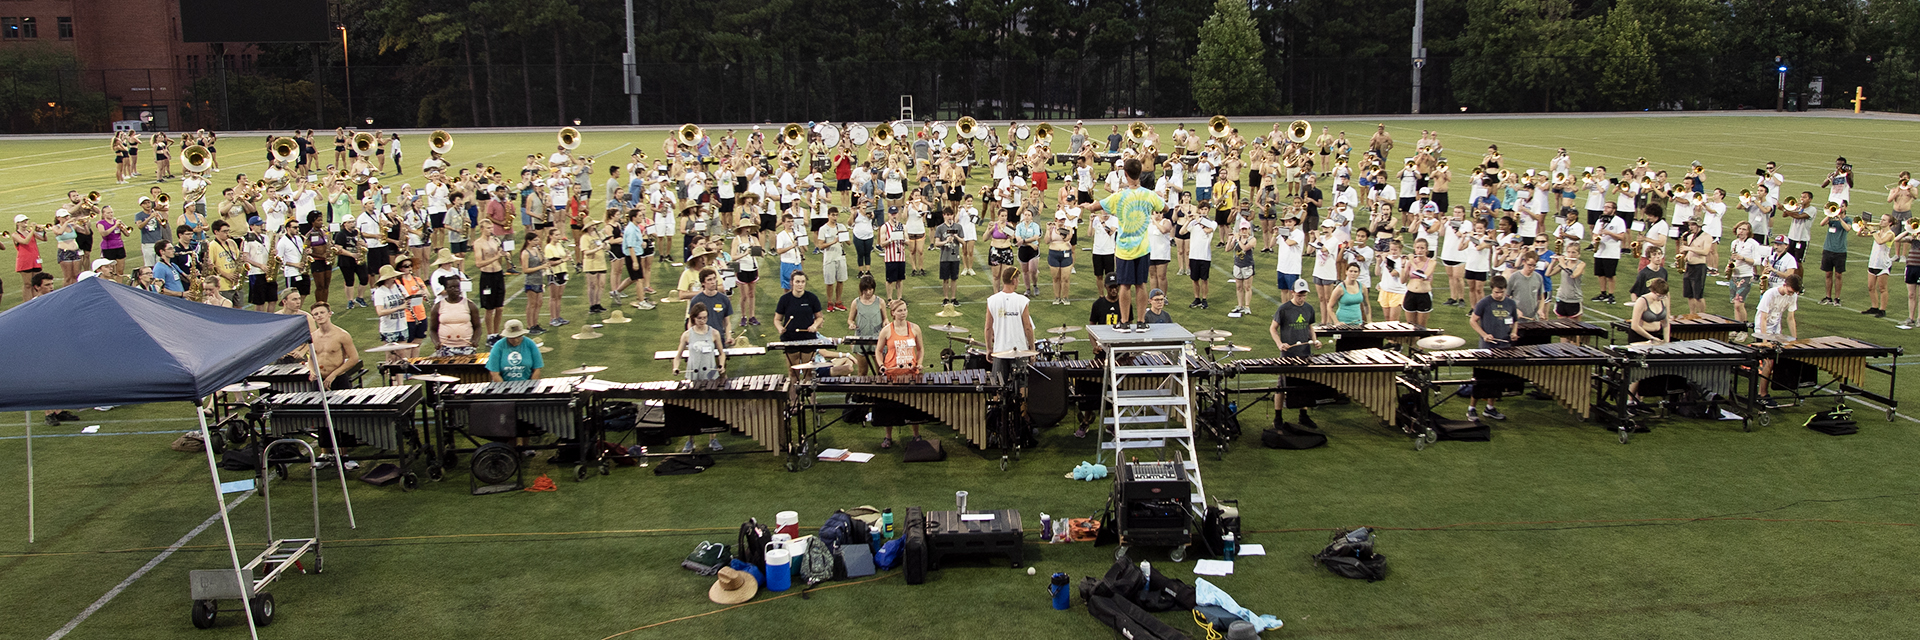 Students outside on a field at band camp.